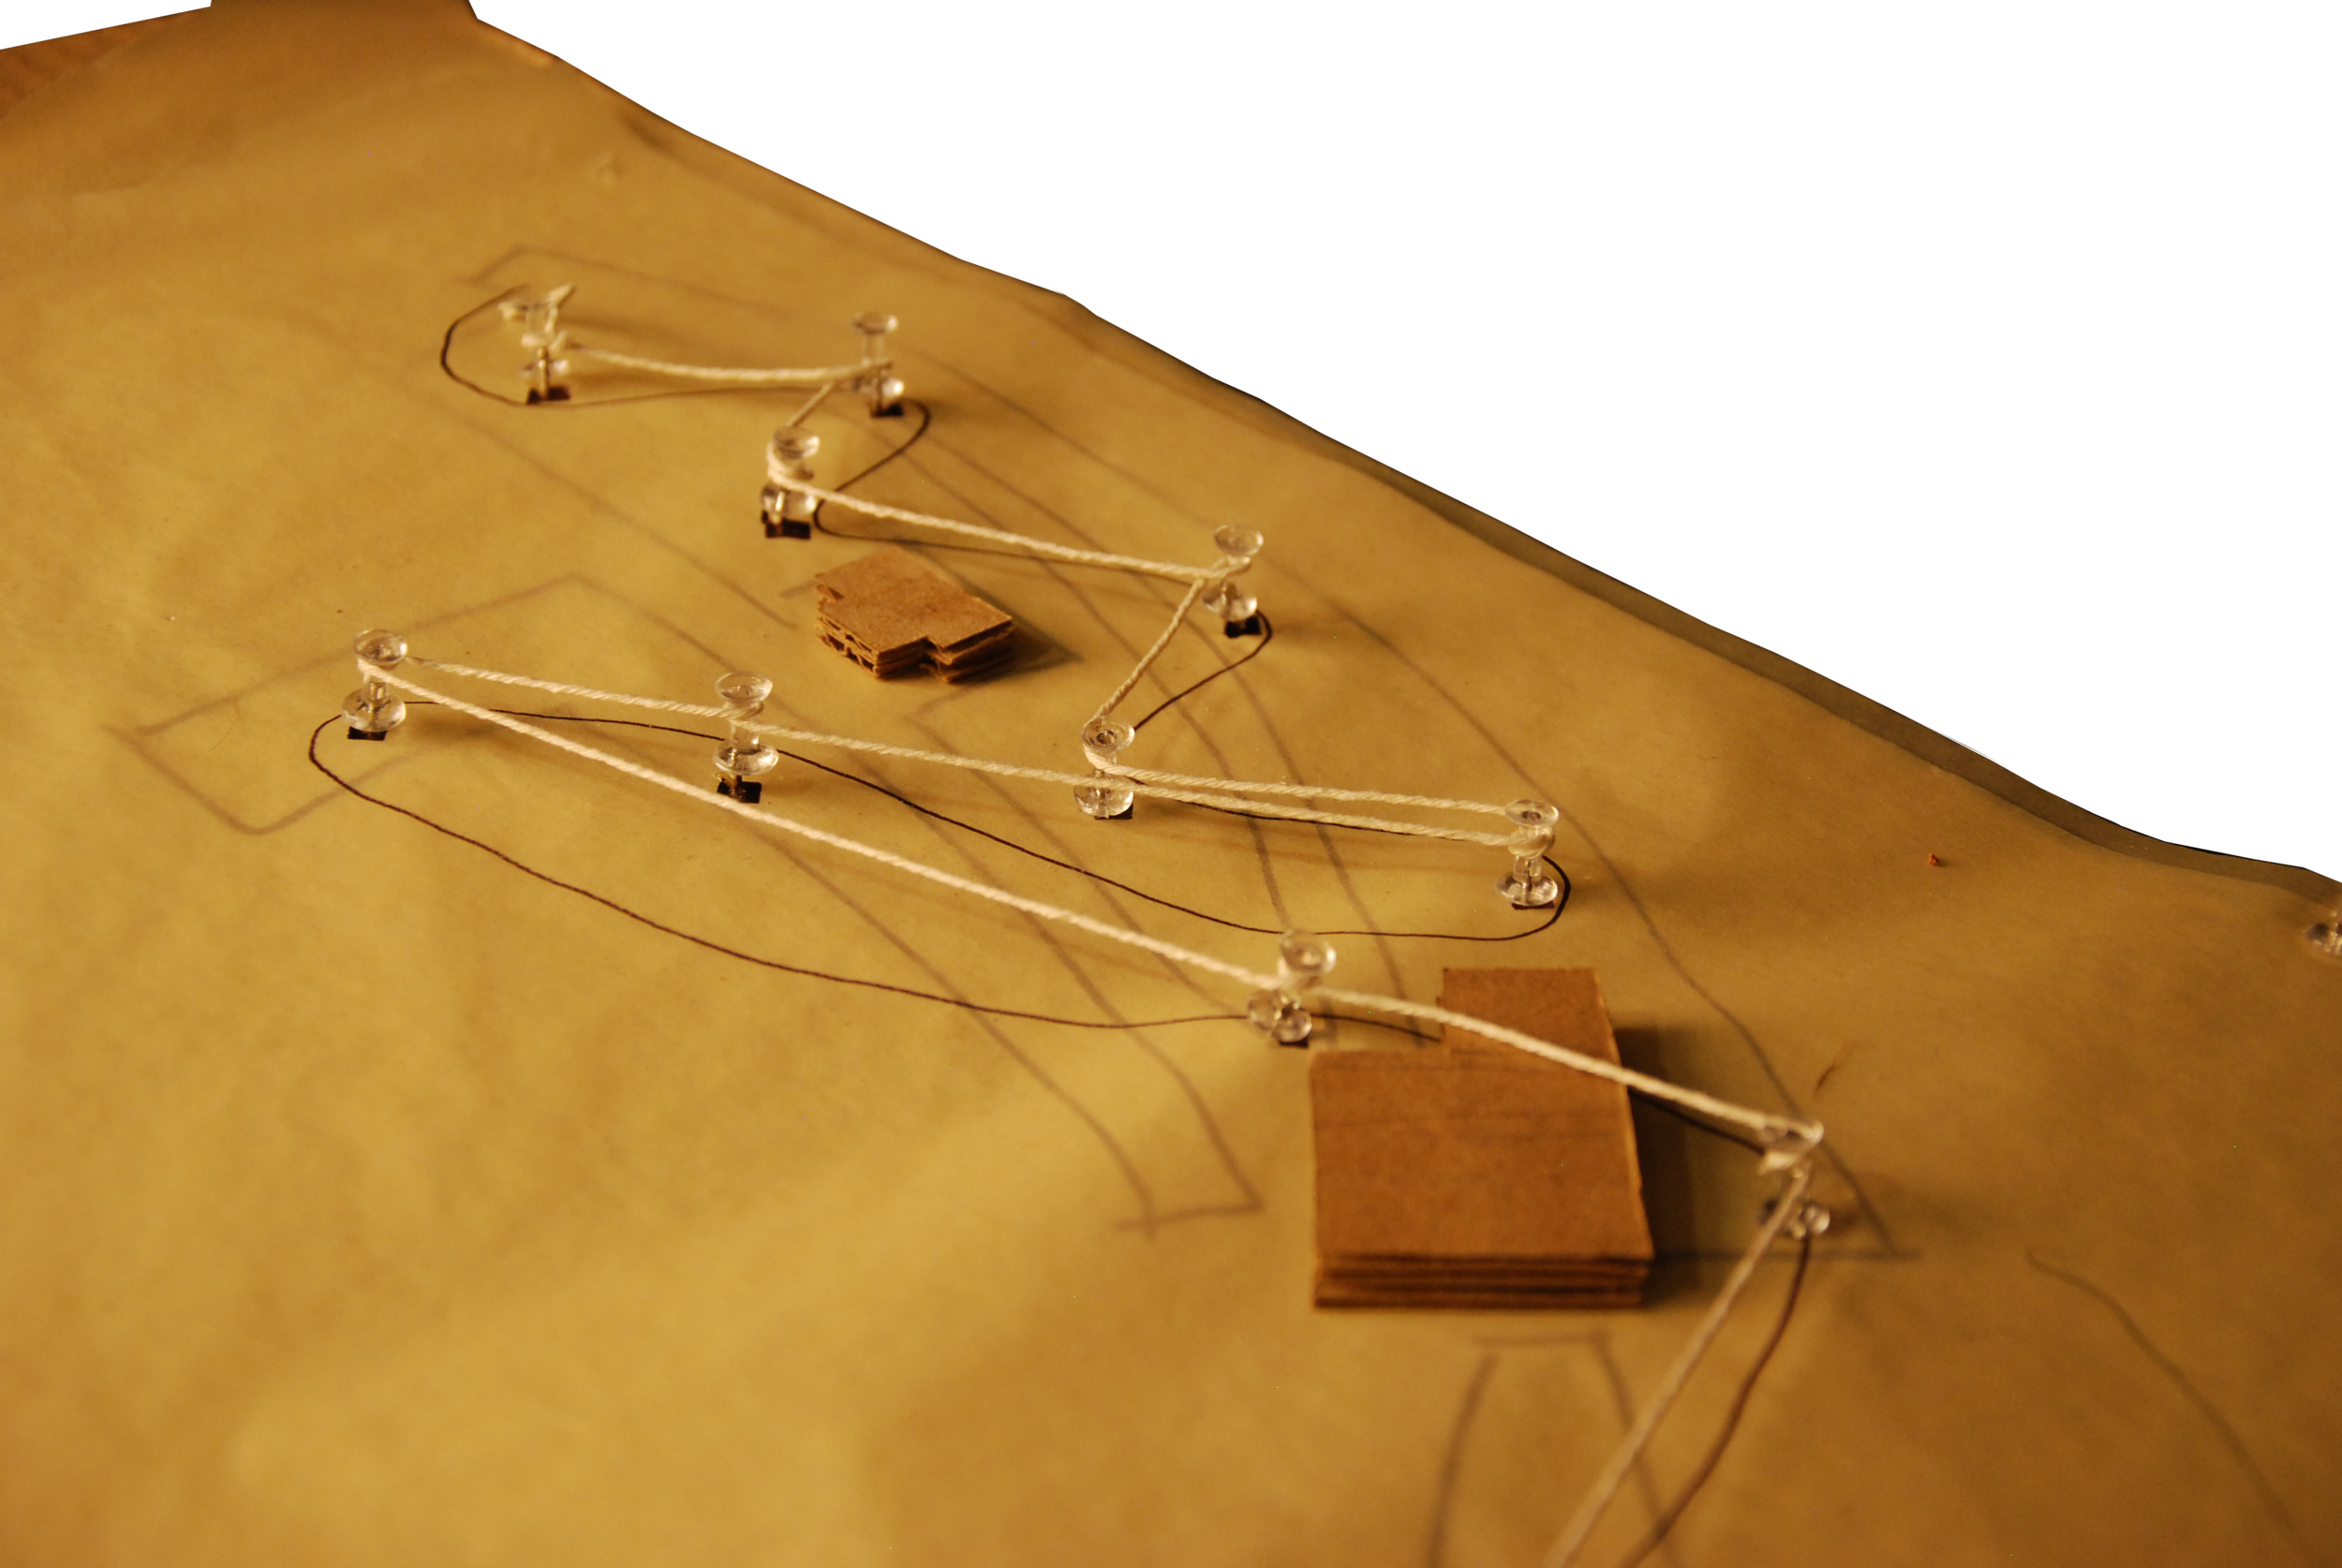 Concept Model of connecting points of interest along a pathway